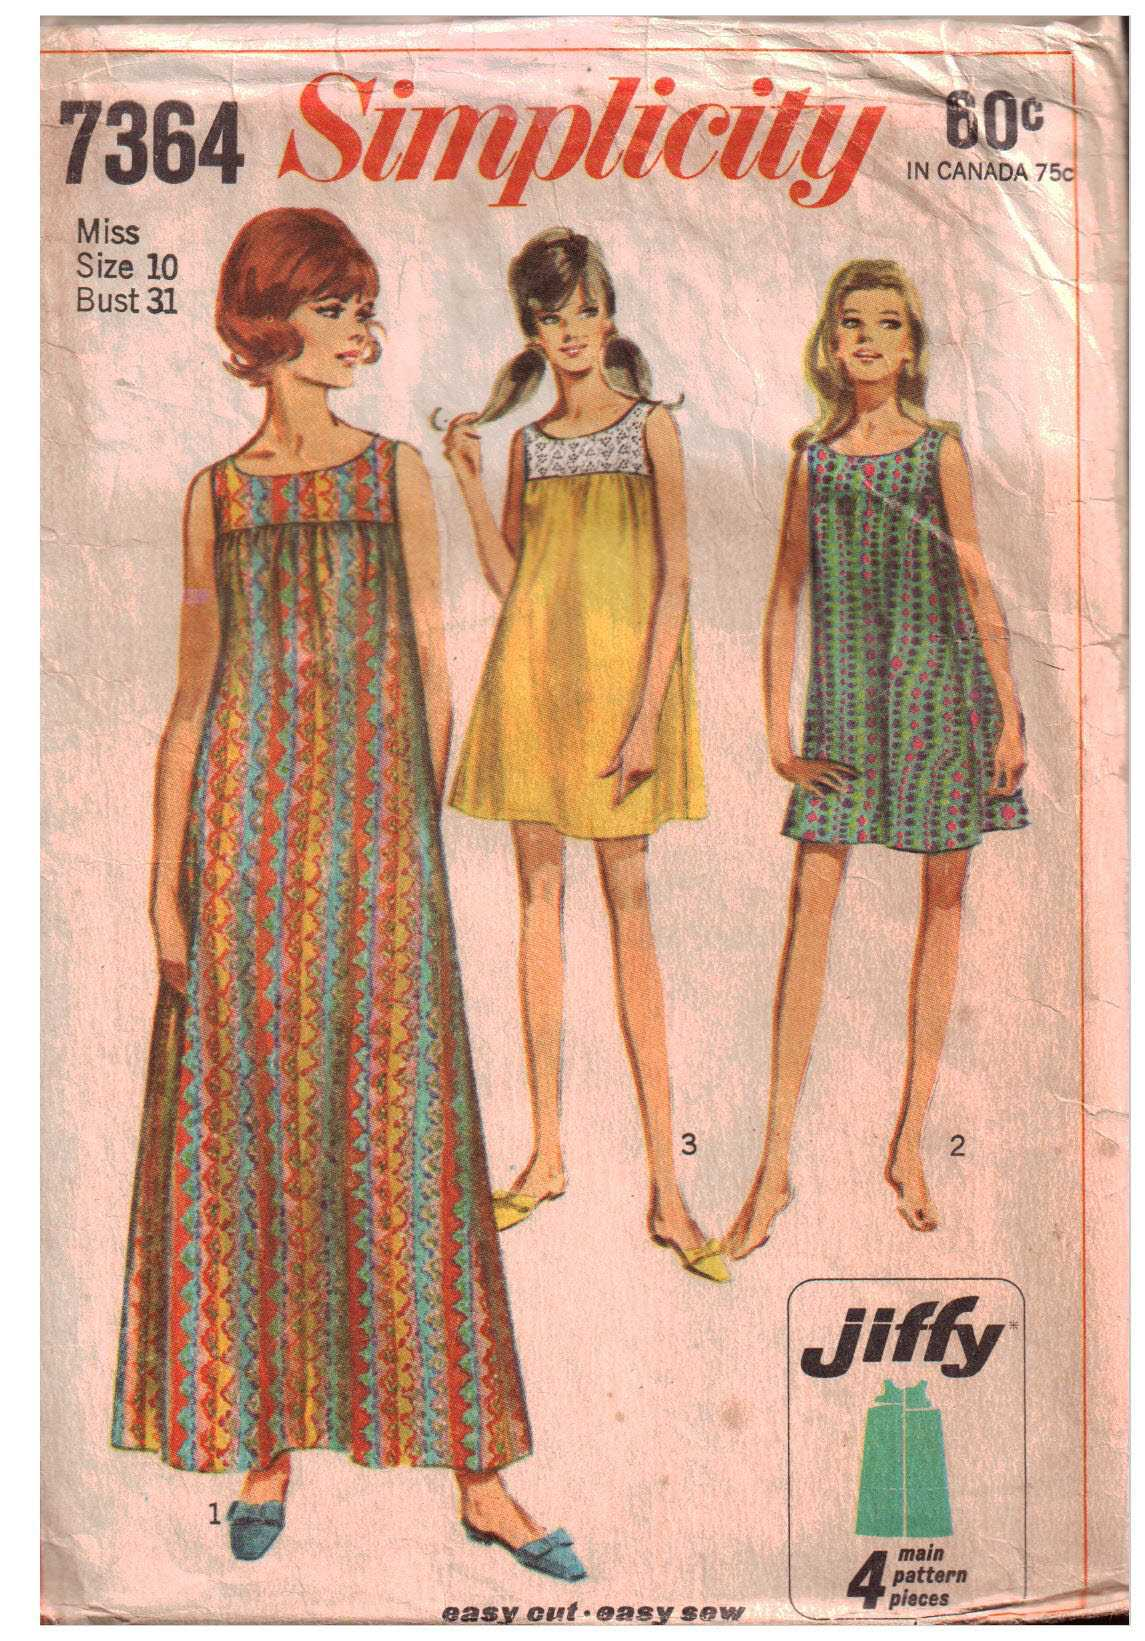 Simplicity 7364 Nightgown Size: 10 Bust 31 Used Sewing Pattern